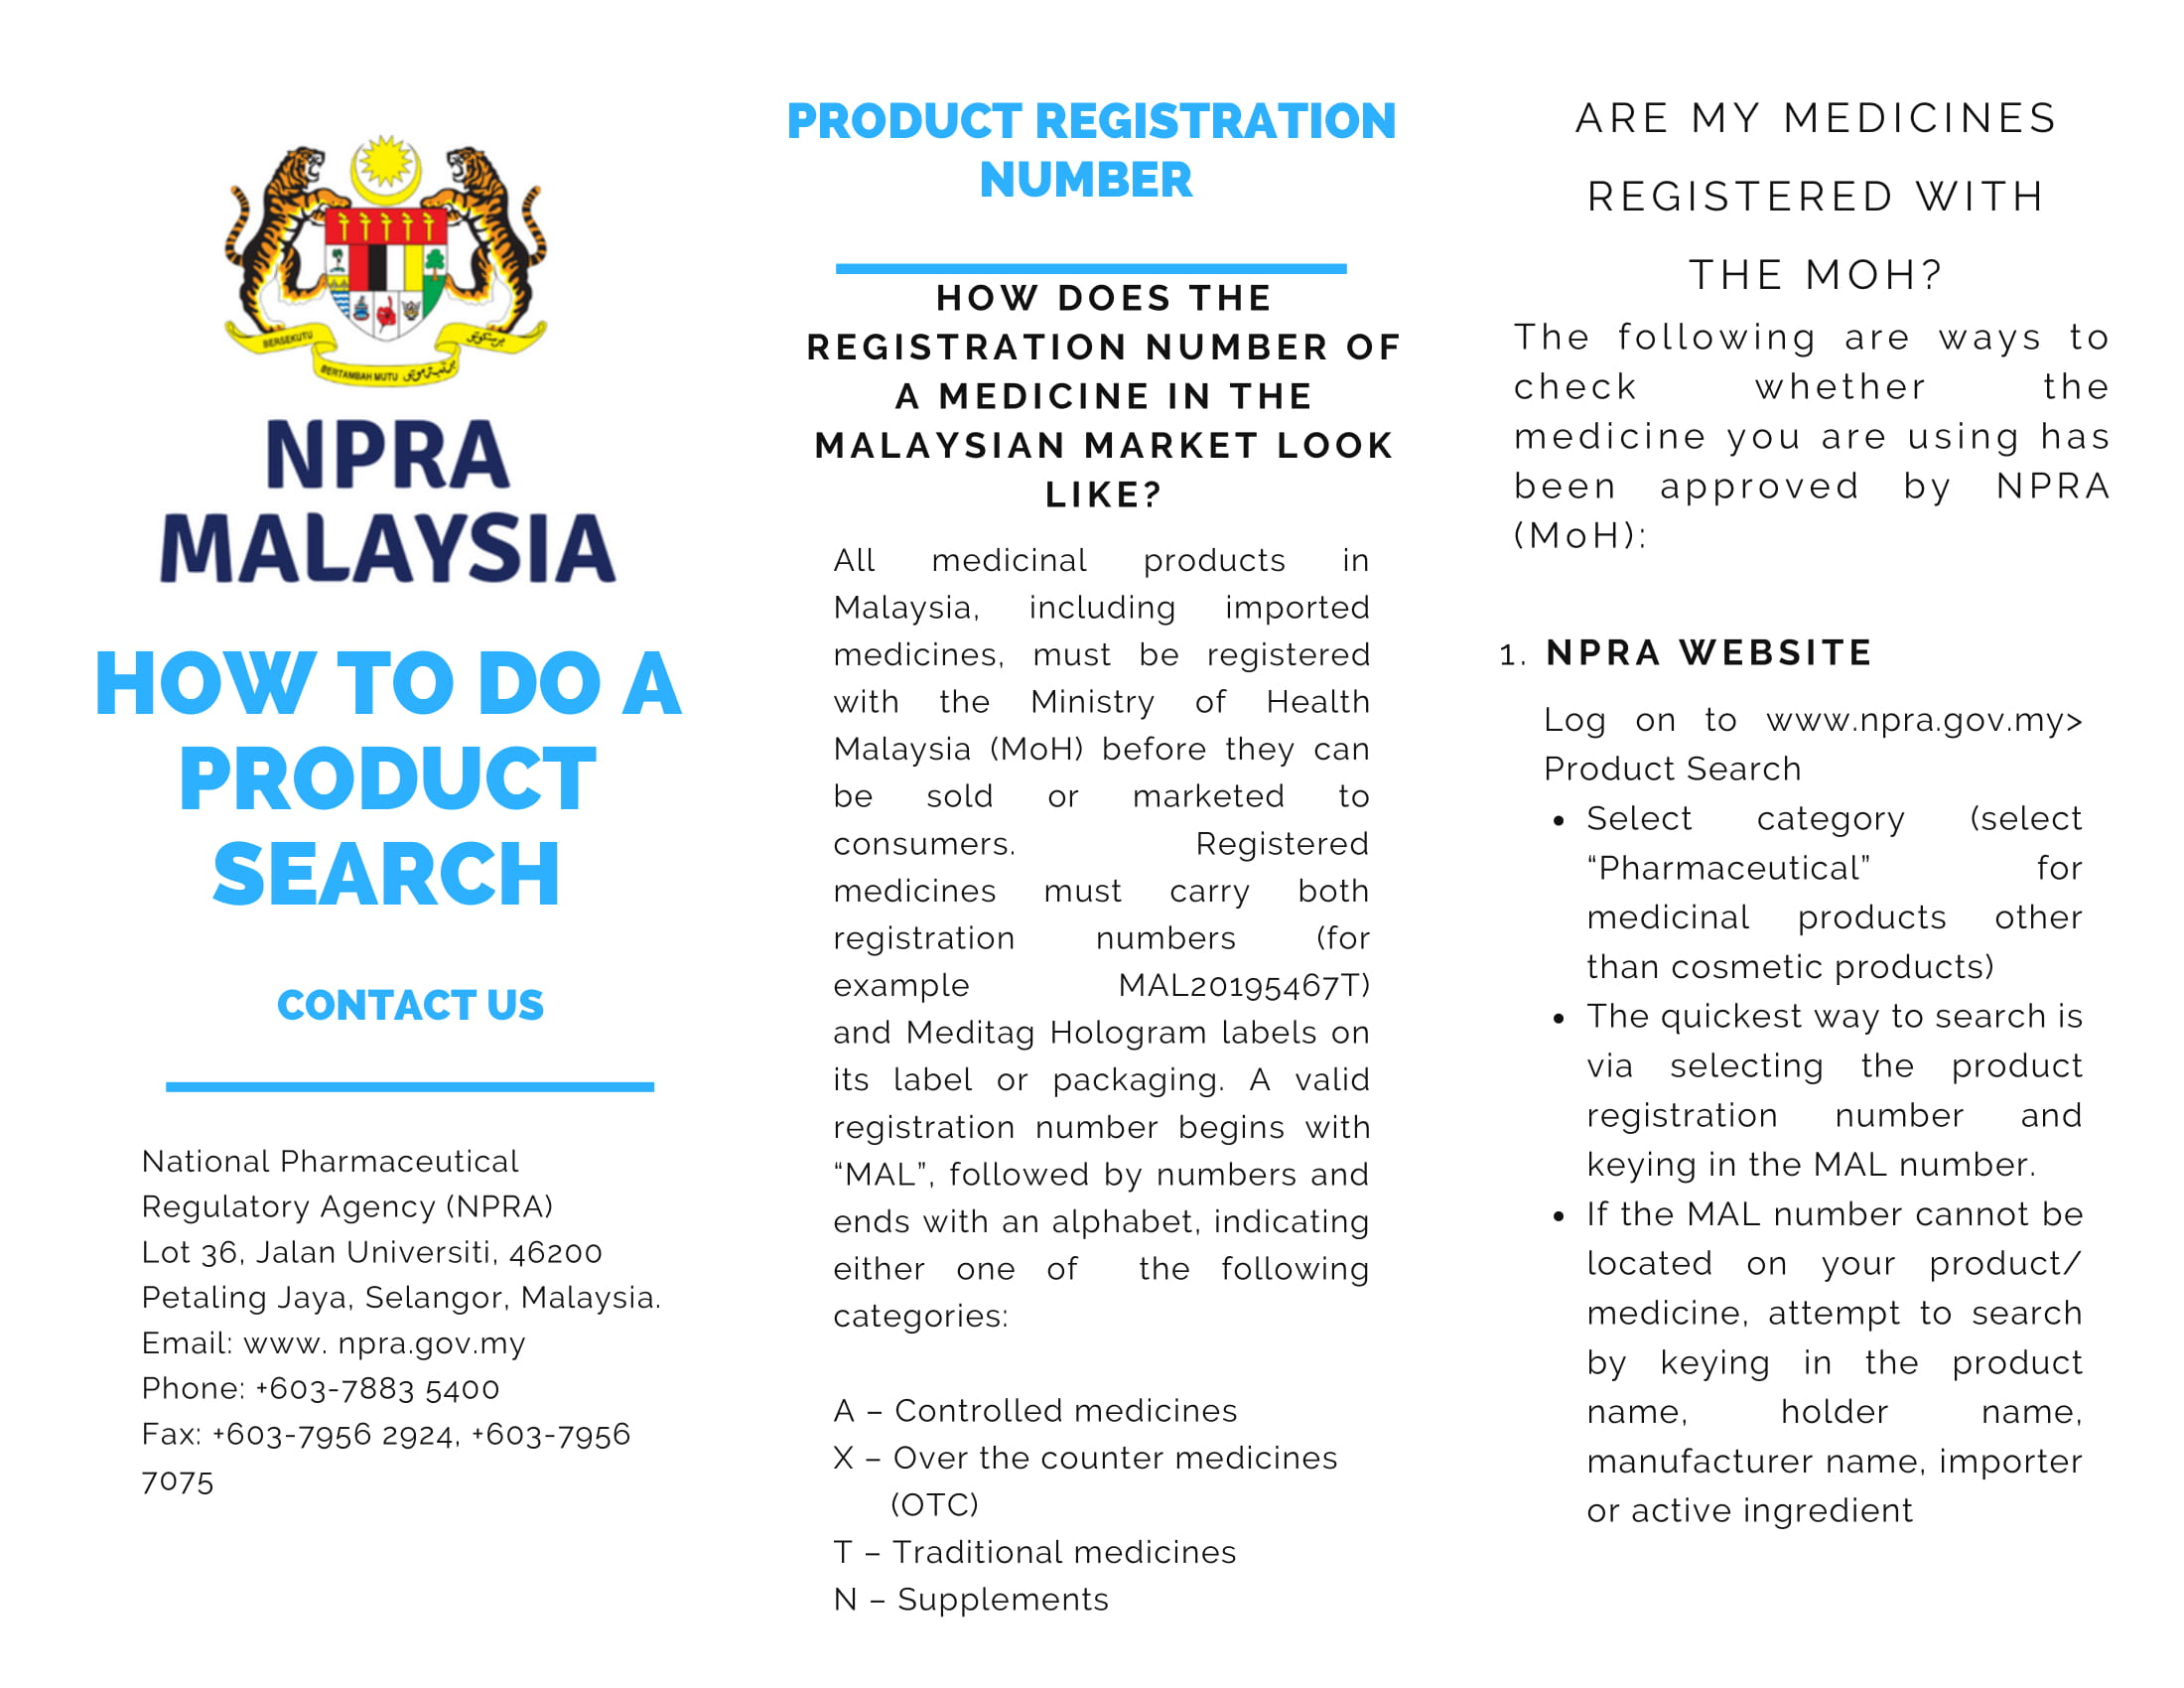 NPRA PRODUCT SEARCH